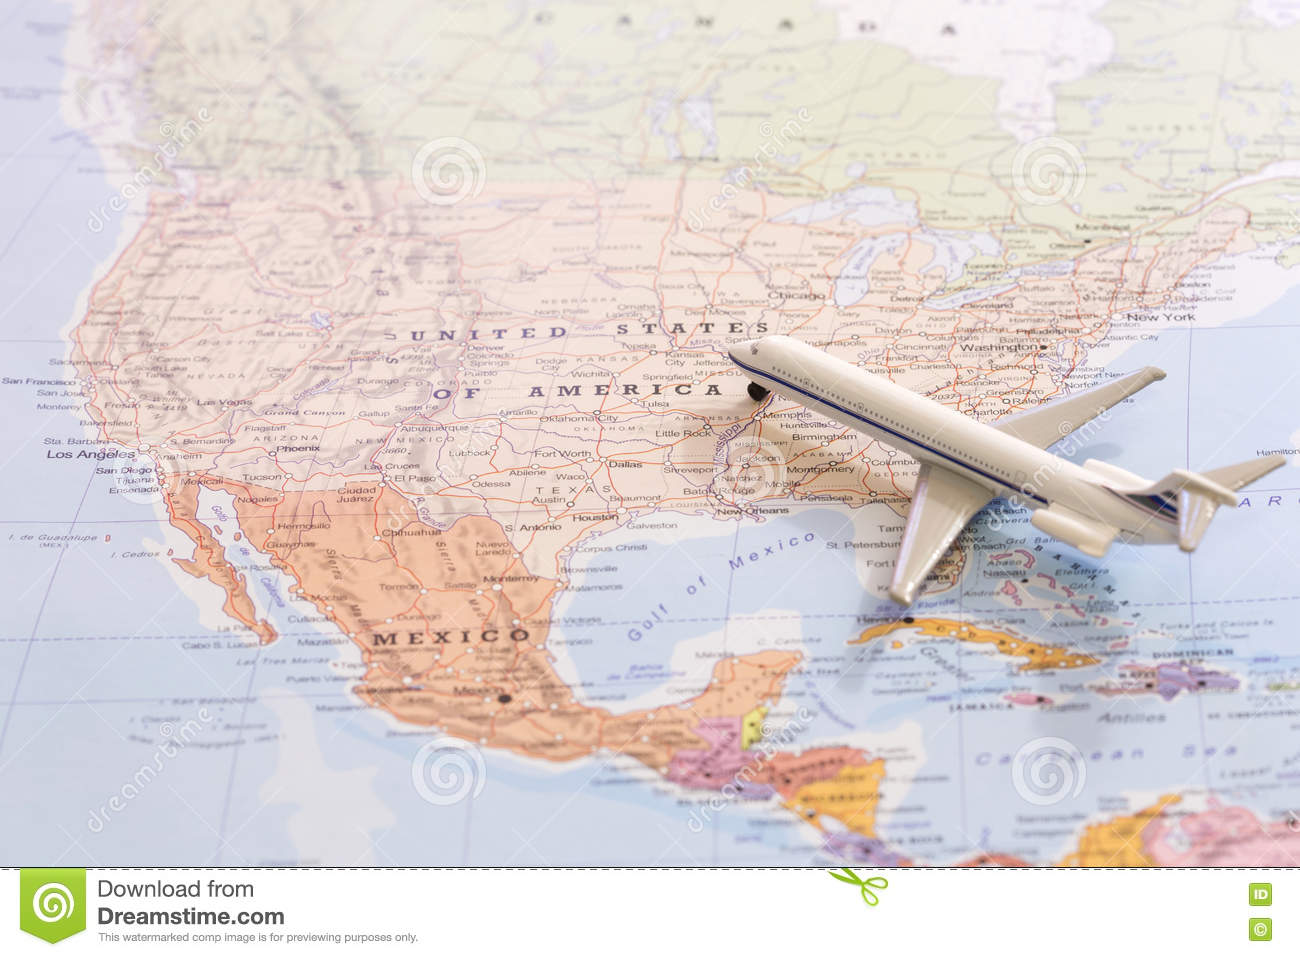 Miniature Of Passenger Plane On A Map Travel Destination USA – Travel Map Of Usa